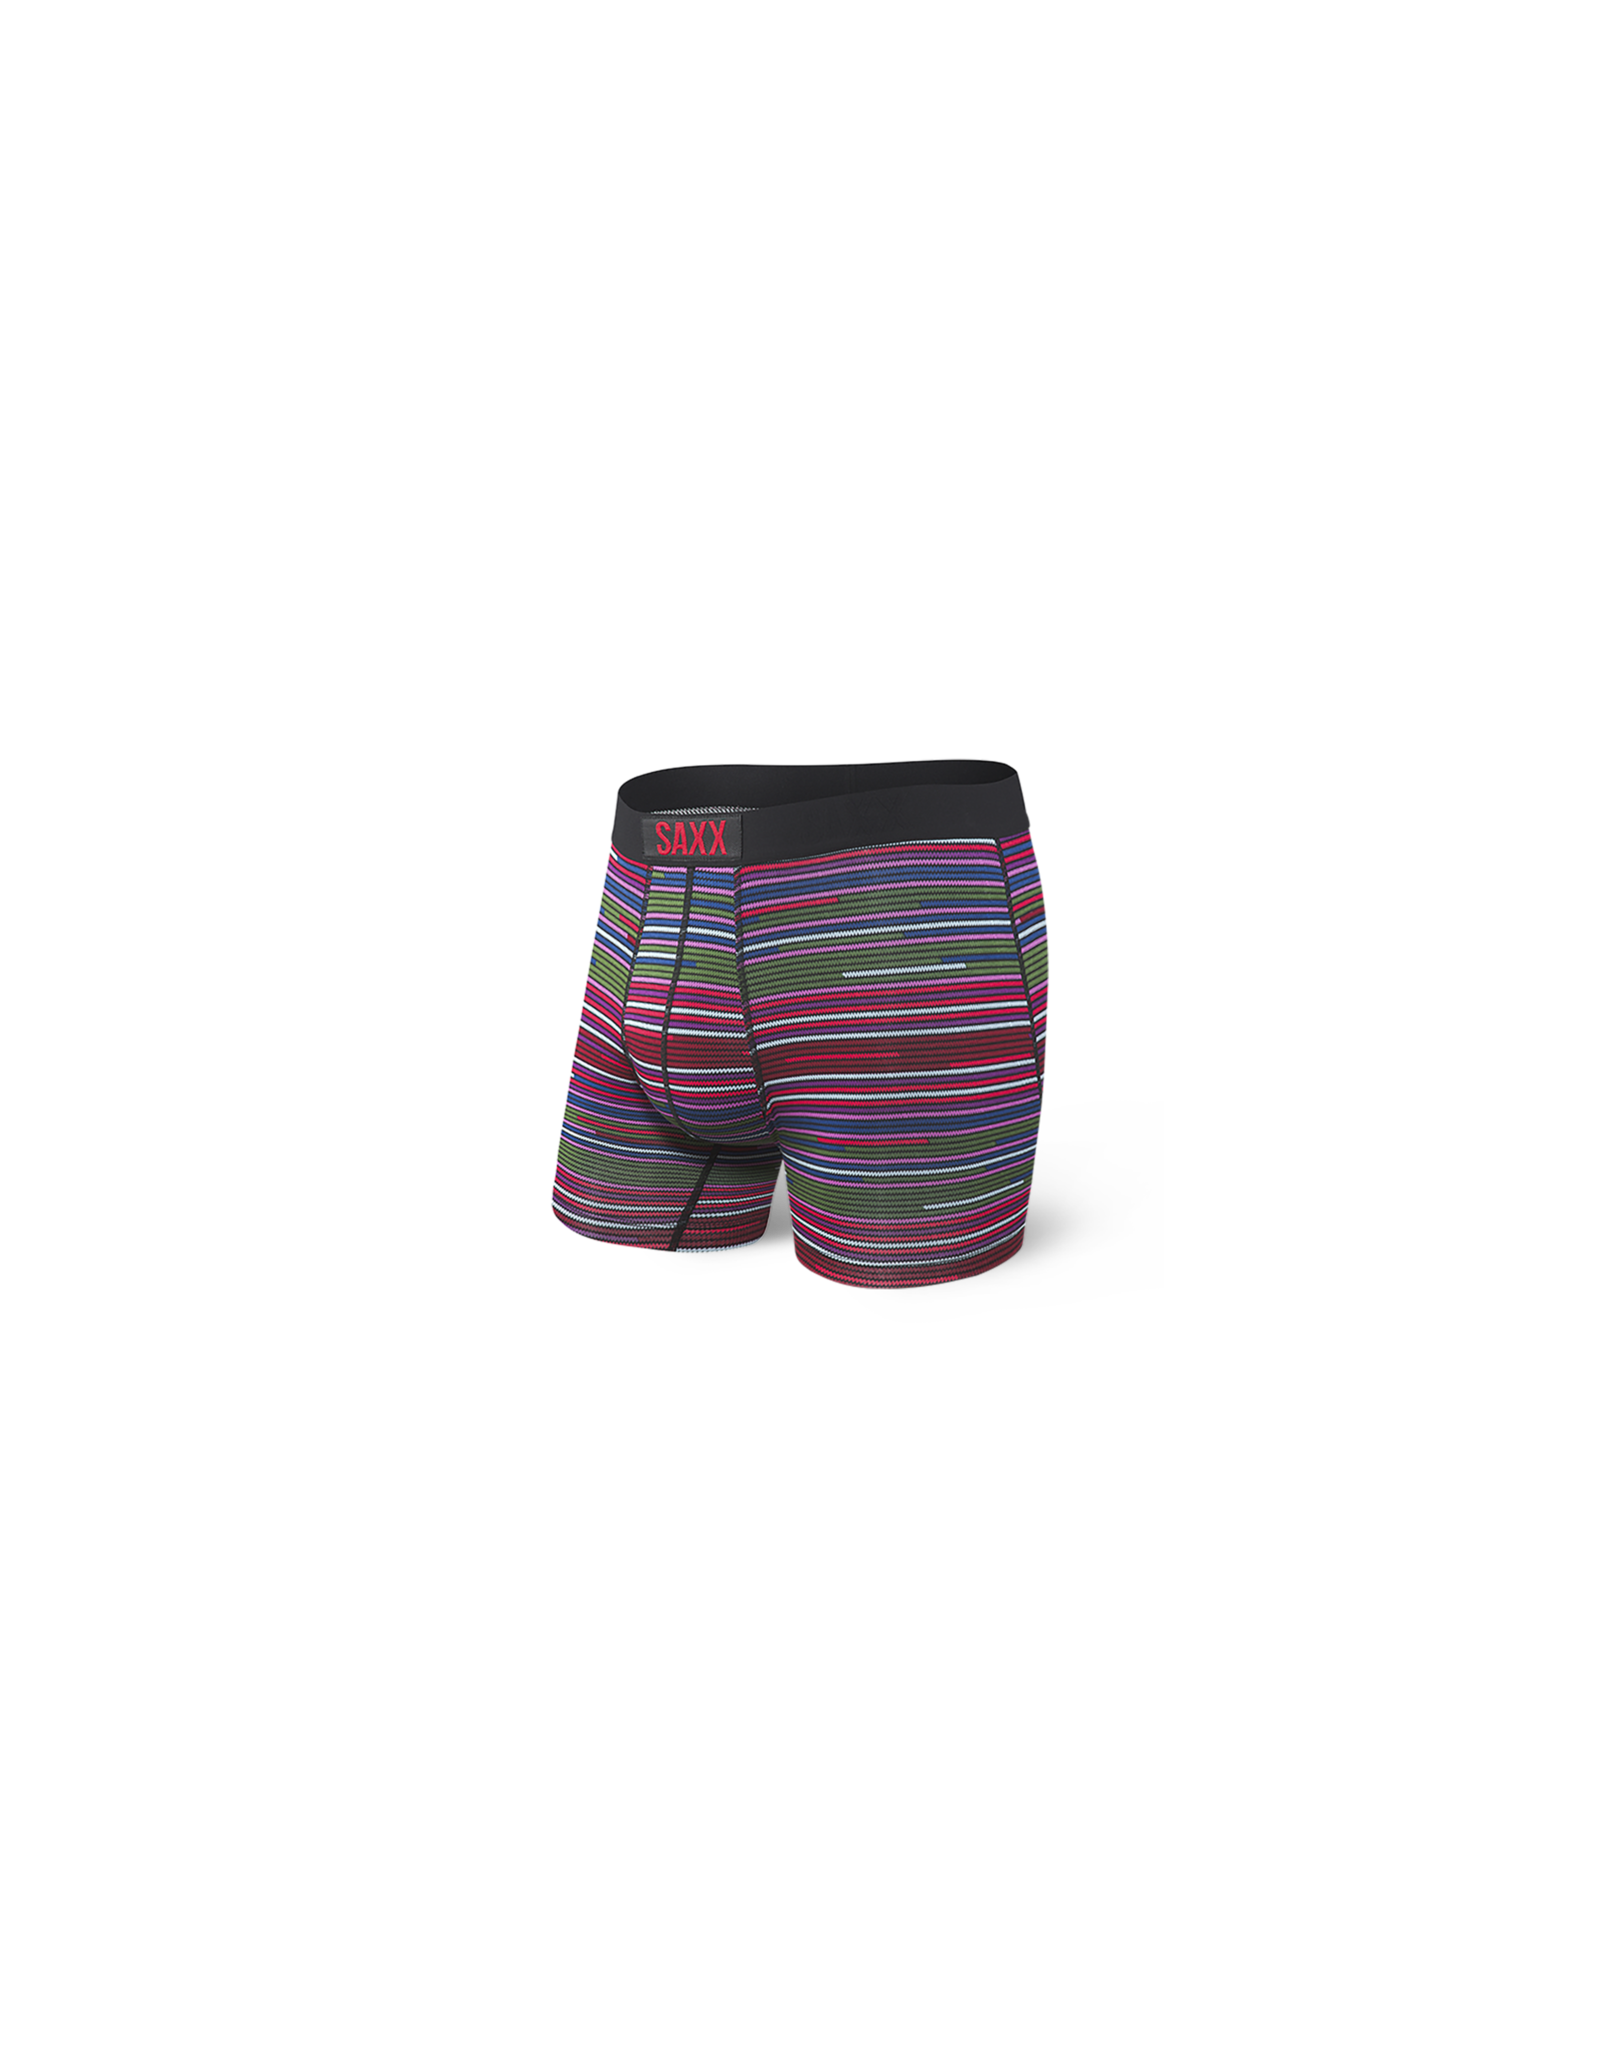 Saxx Saxx Vibe Boxer Brief - Red Serape Stripe